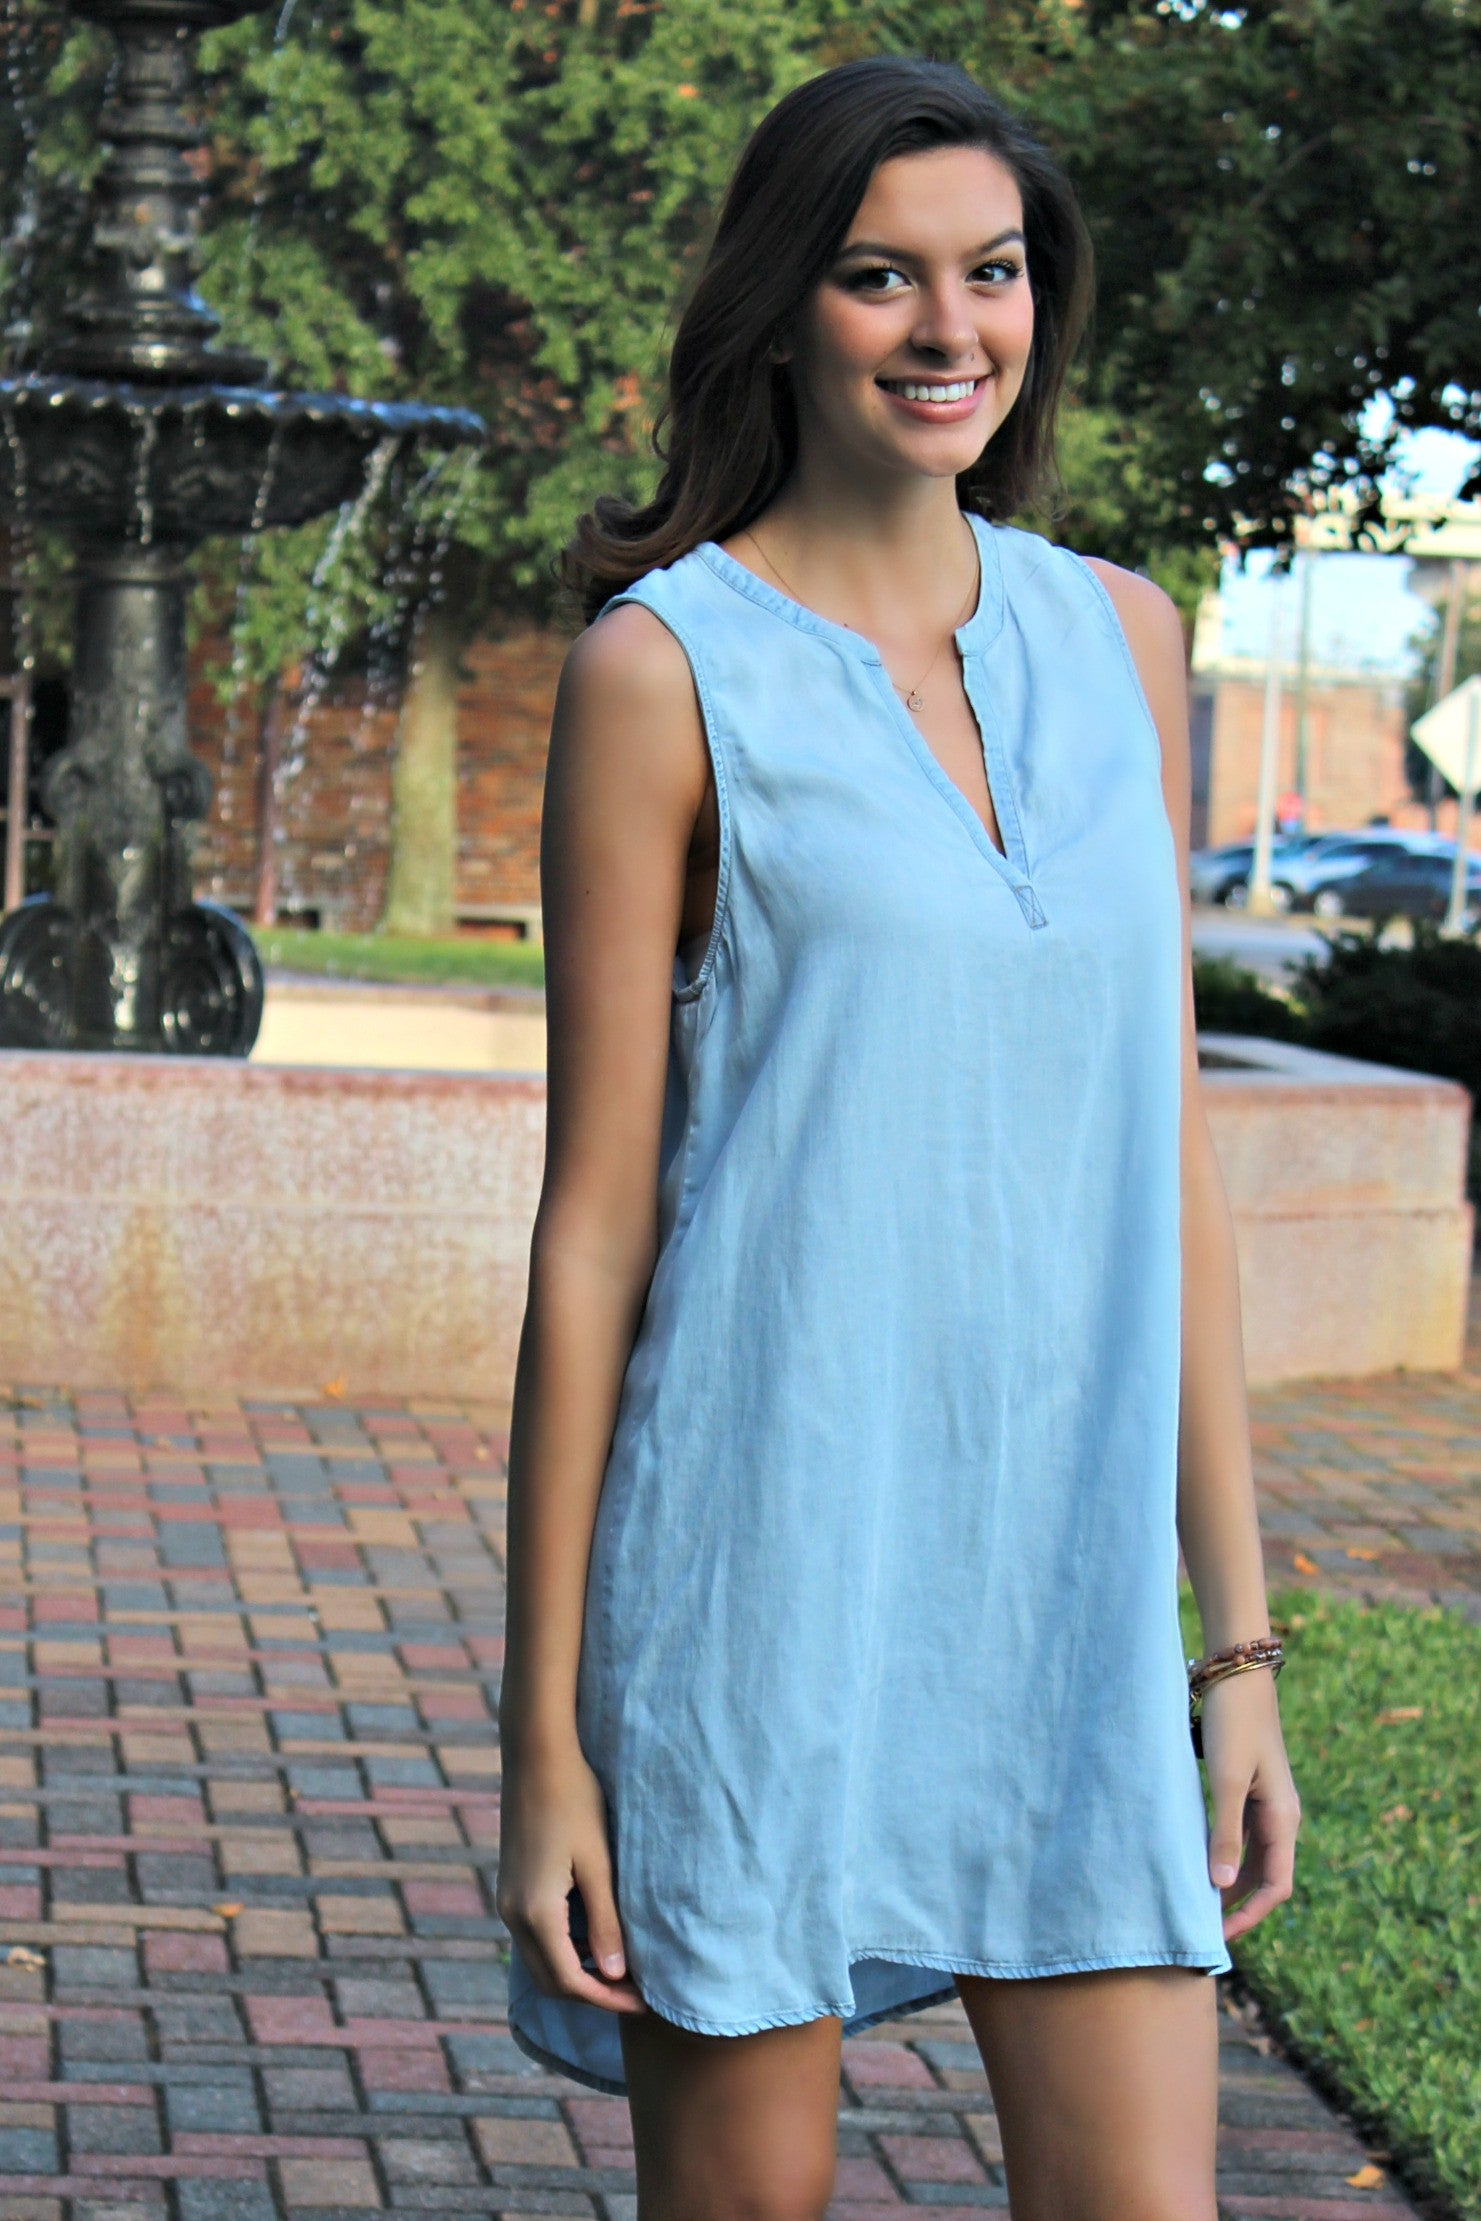 Glam: Baby Blue Dress, Light Denim